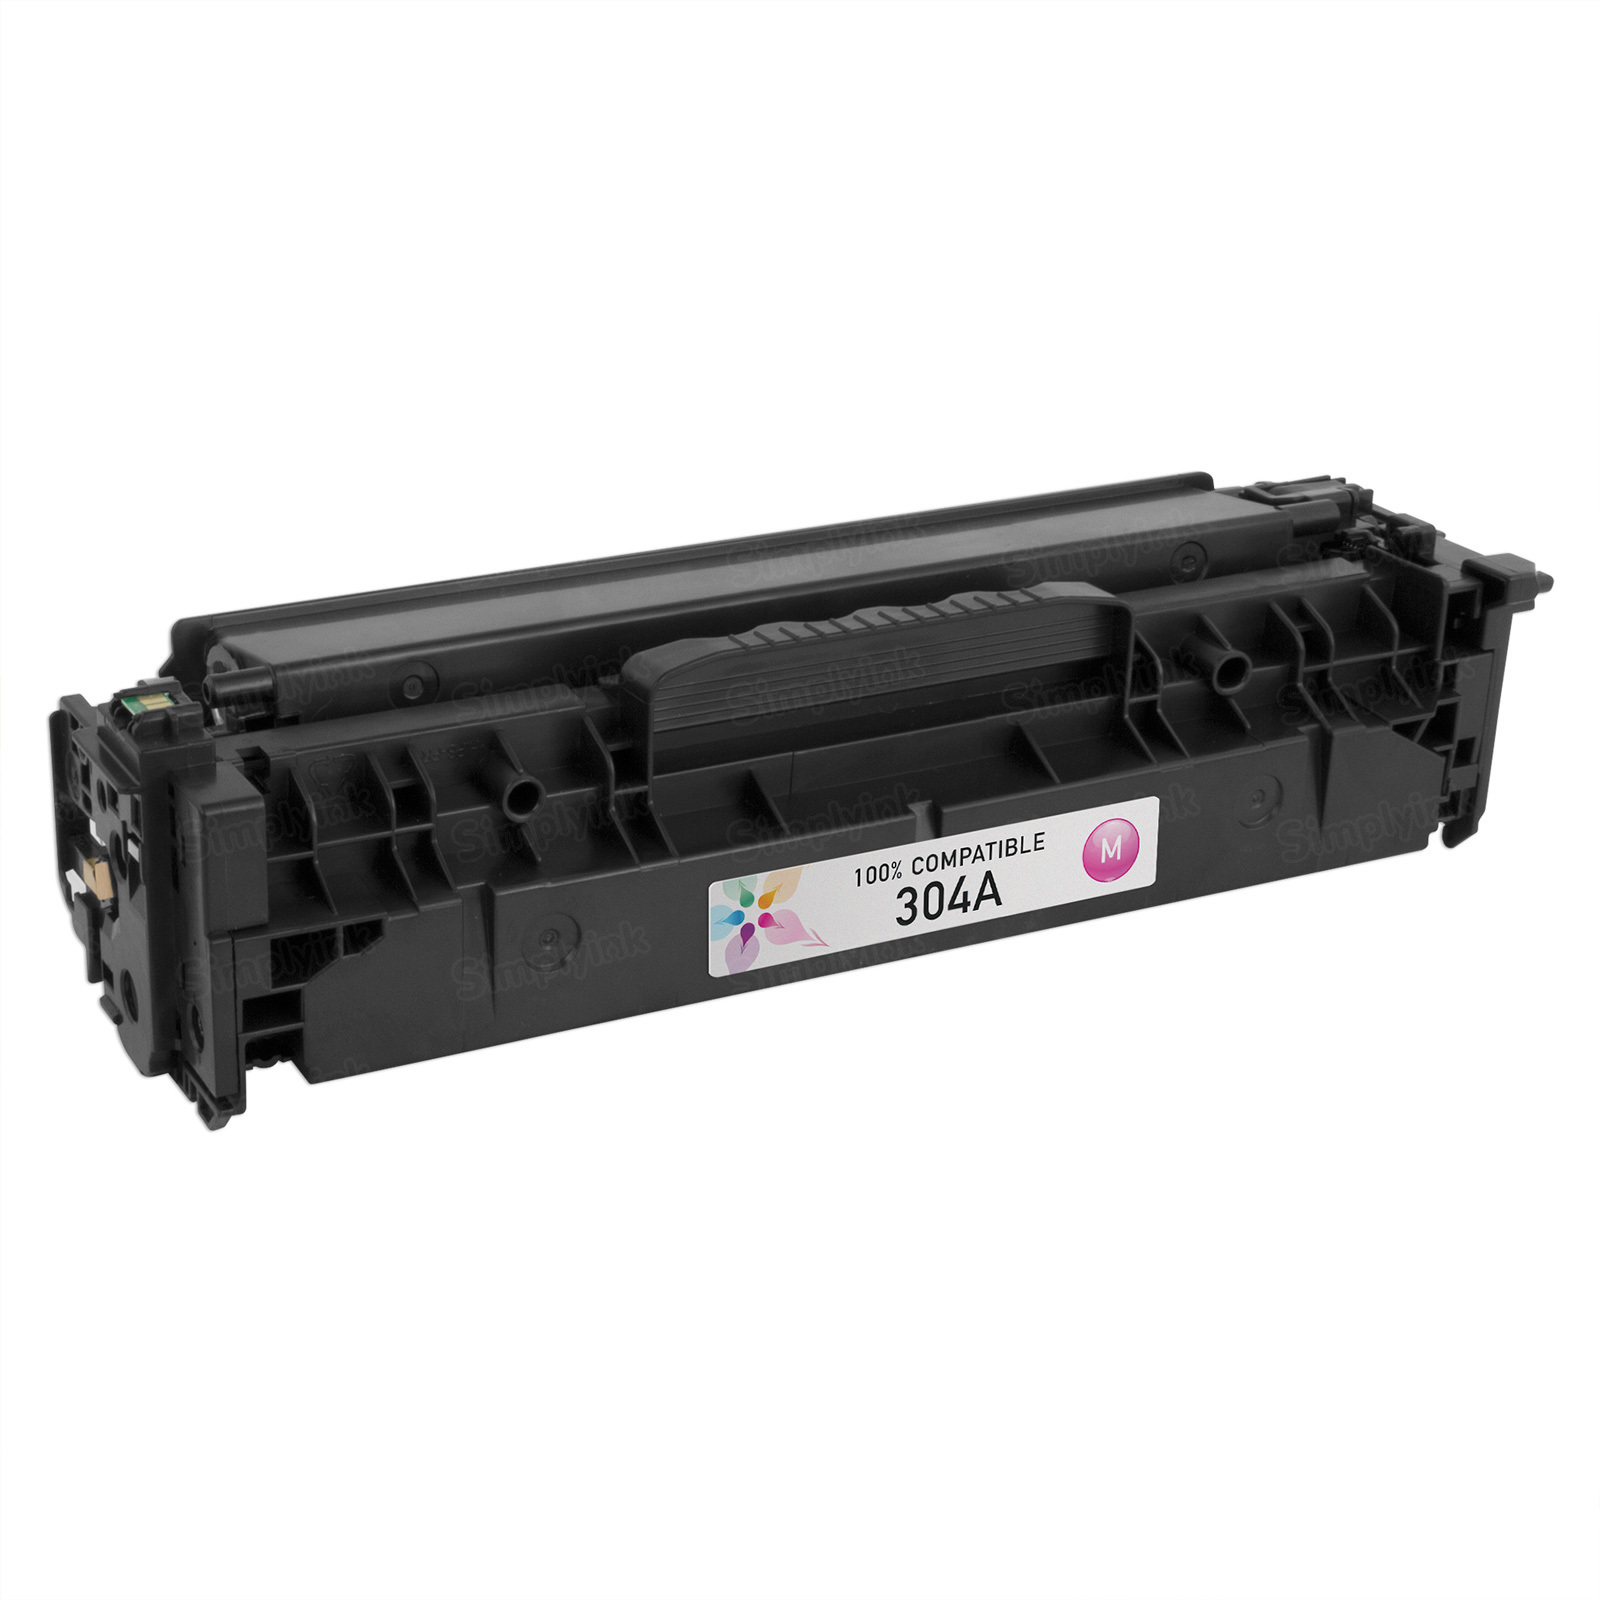 Replacement Magenta Toner for HP 304A